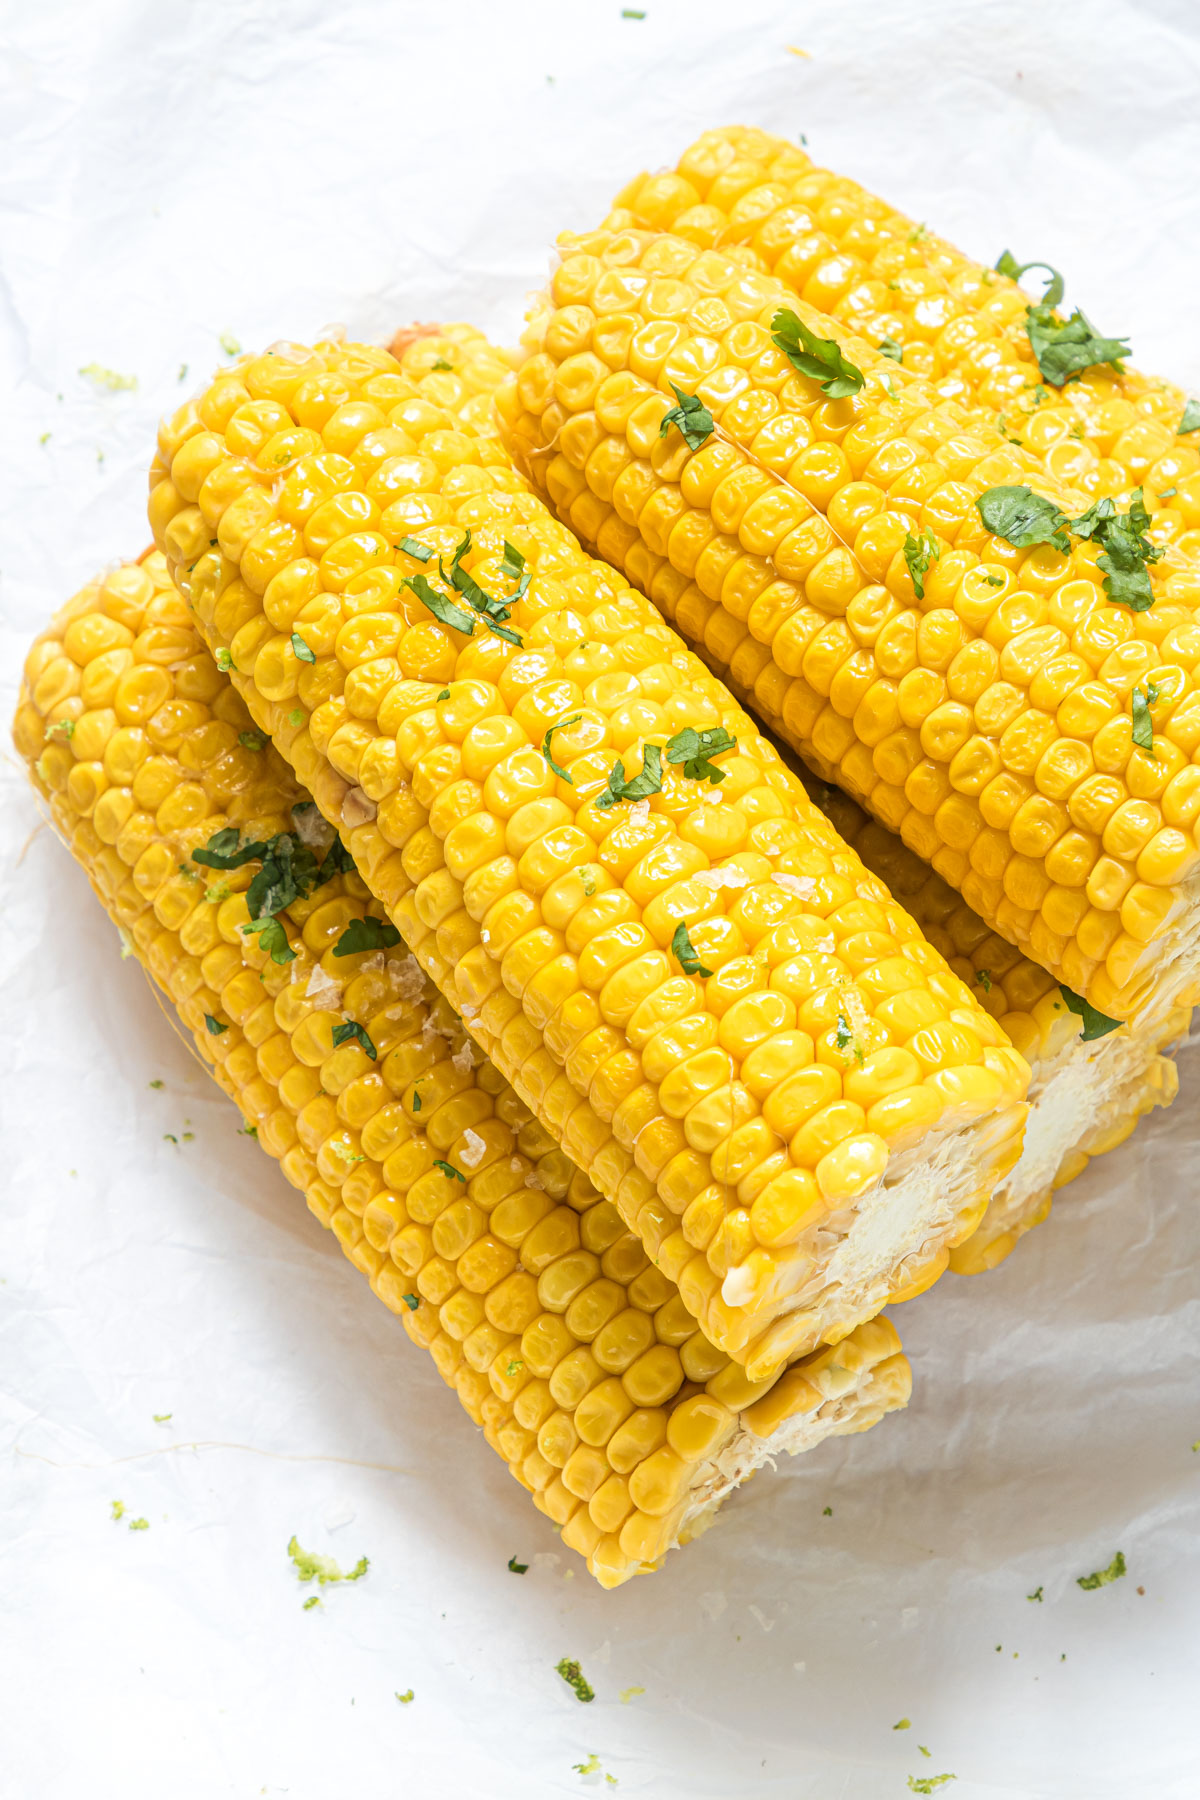 the finished instant pot corn on the cob ready to be served